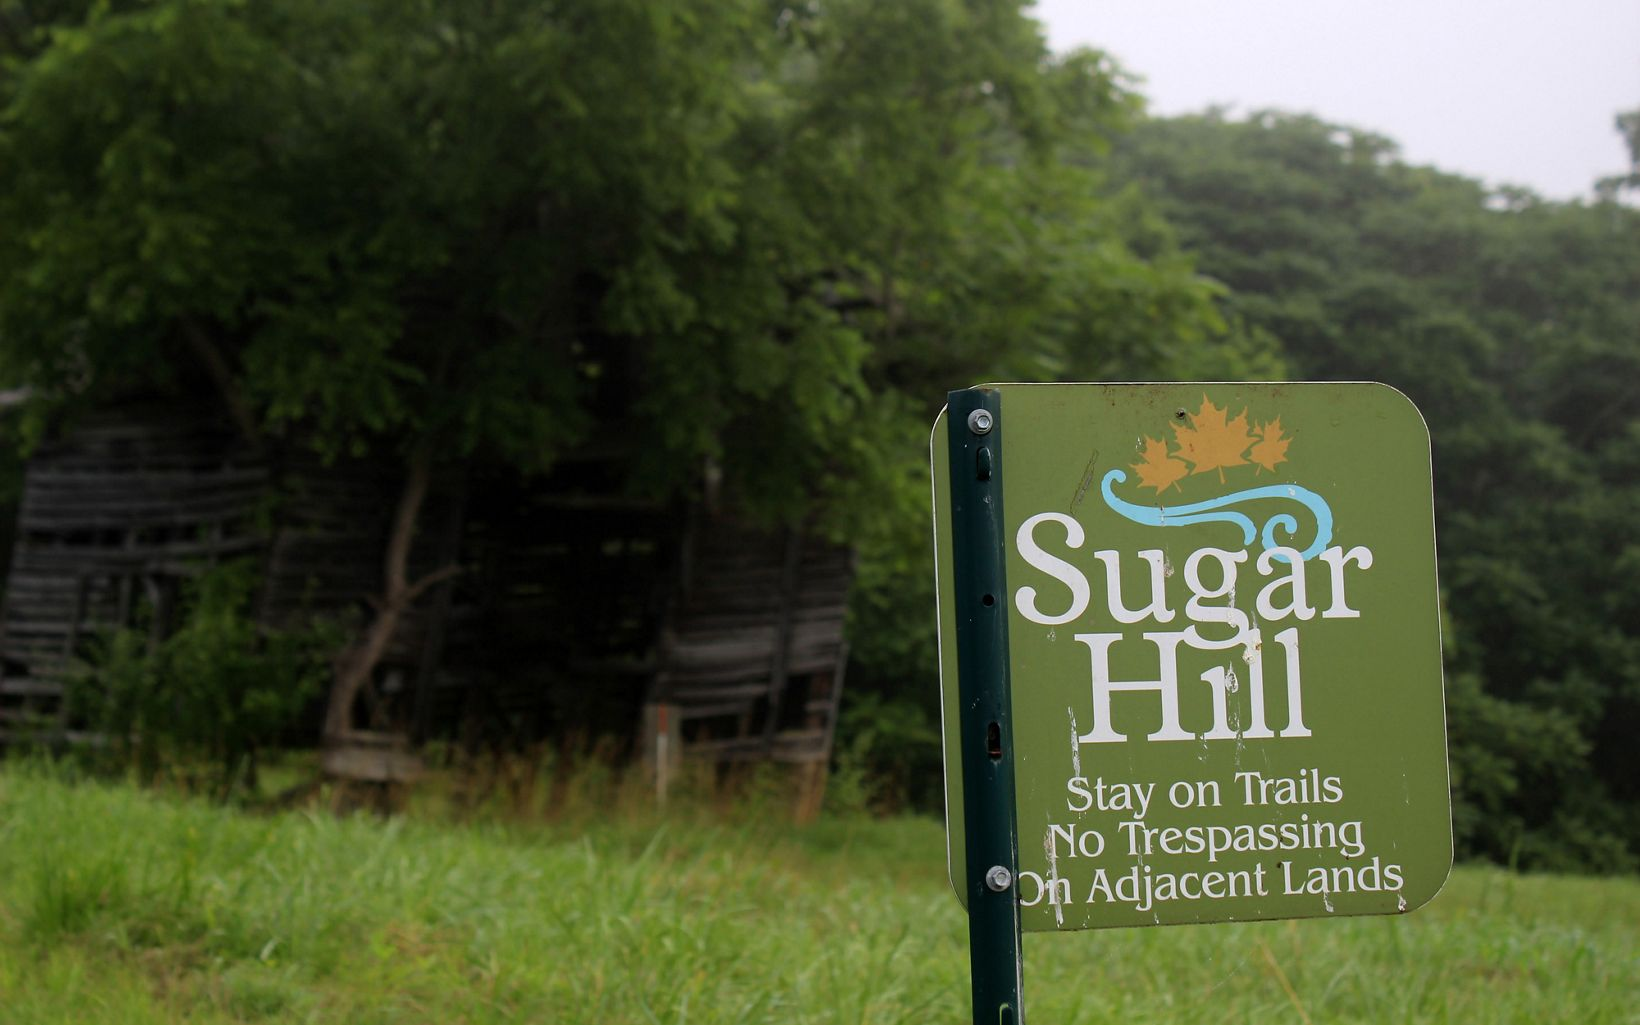 A green metal sign labeled Sugar Hill asks visitors to stay on the trail. The remnants of a cabin are visible in the background under a grove a trees.